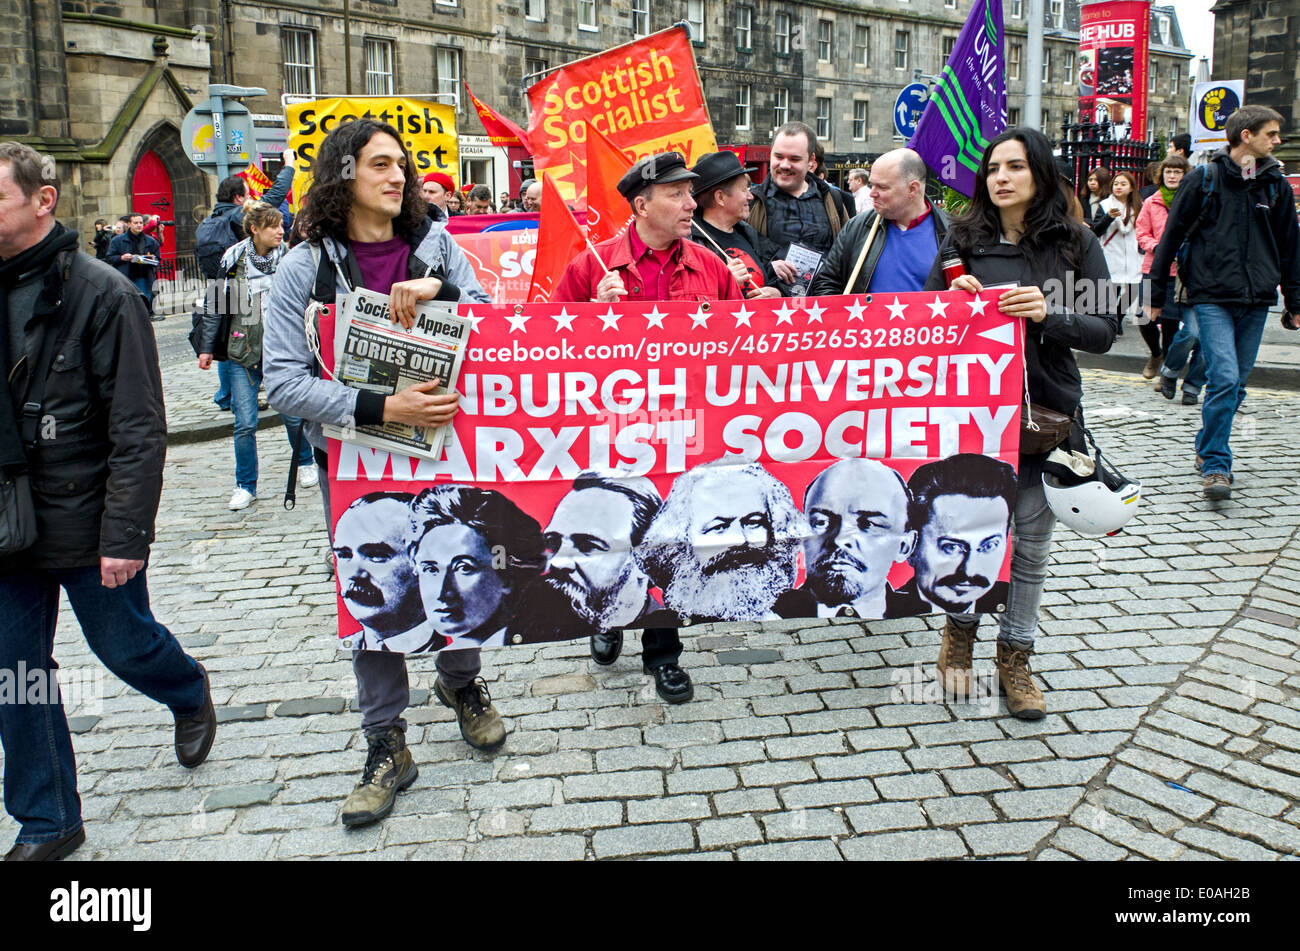 Students from the Edinburgh University Marxist Society marching at a May day Rally in Edinburgh. - Stock Image